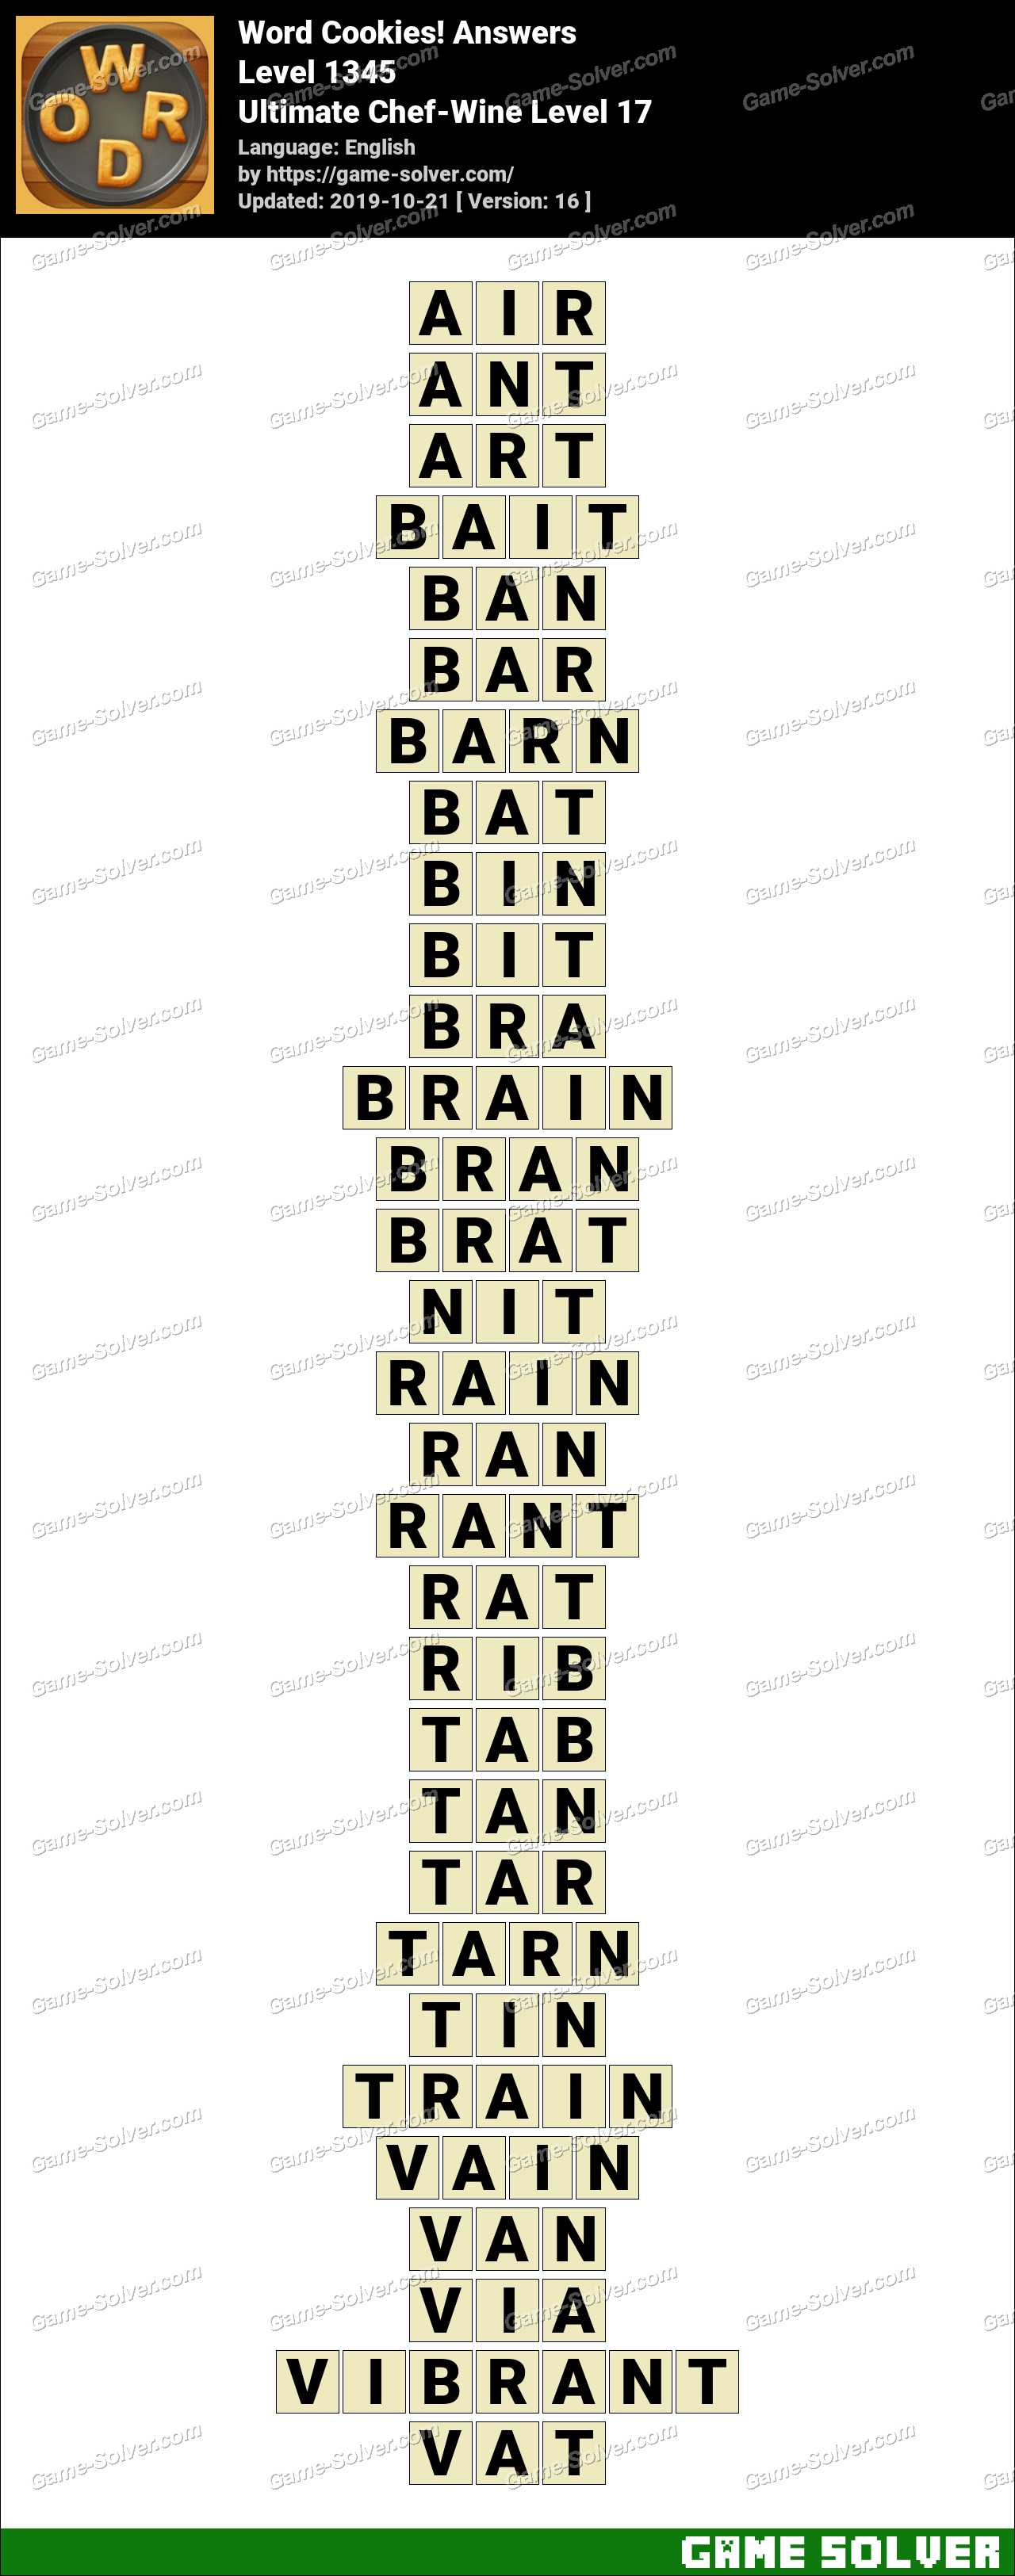 Word Cookies Ultimate Chef-Wine Level 17 Answers